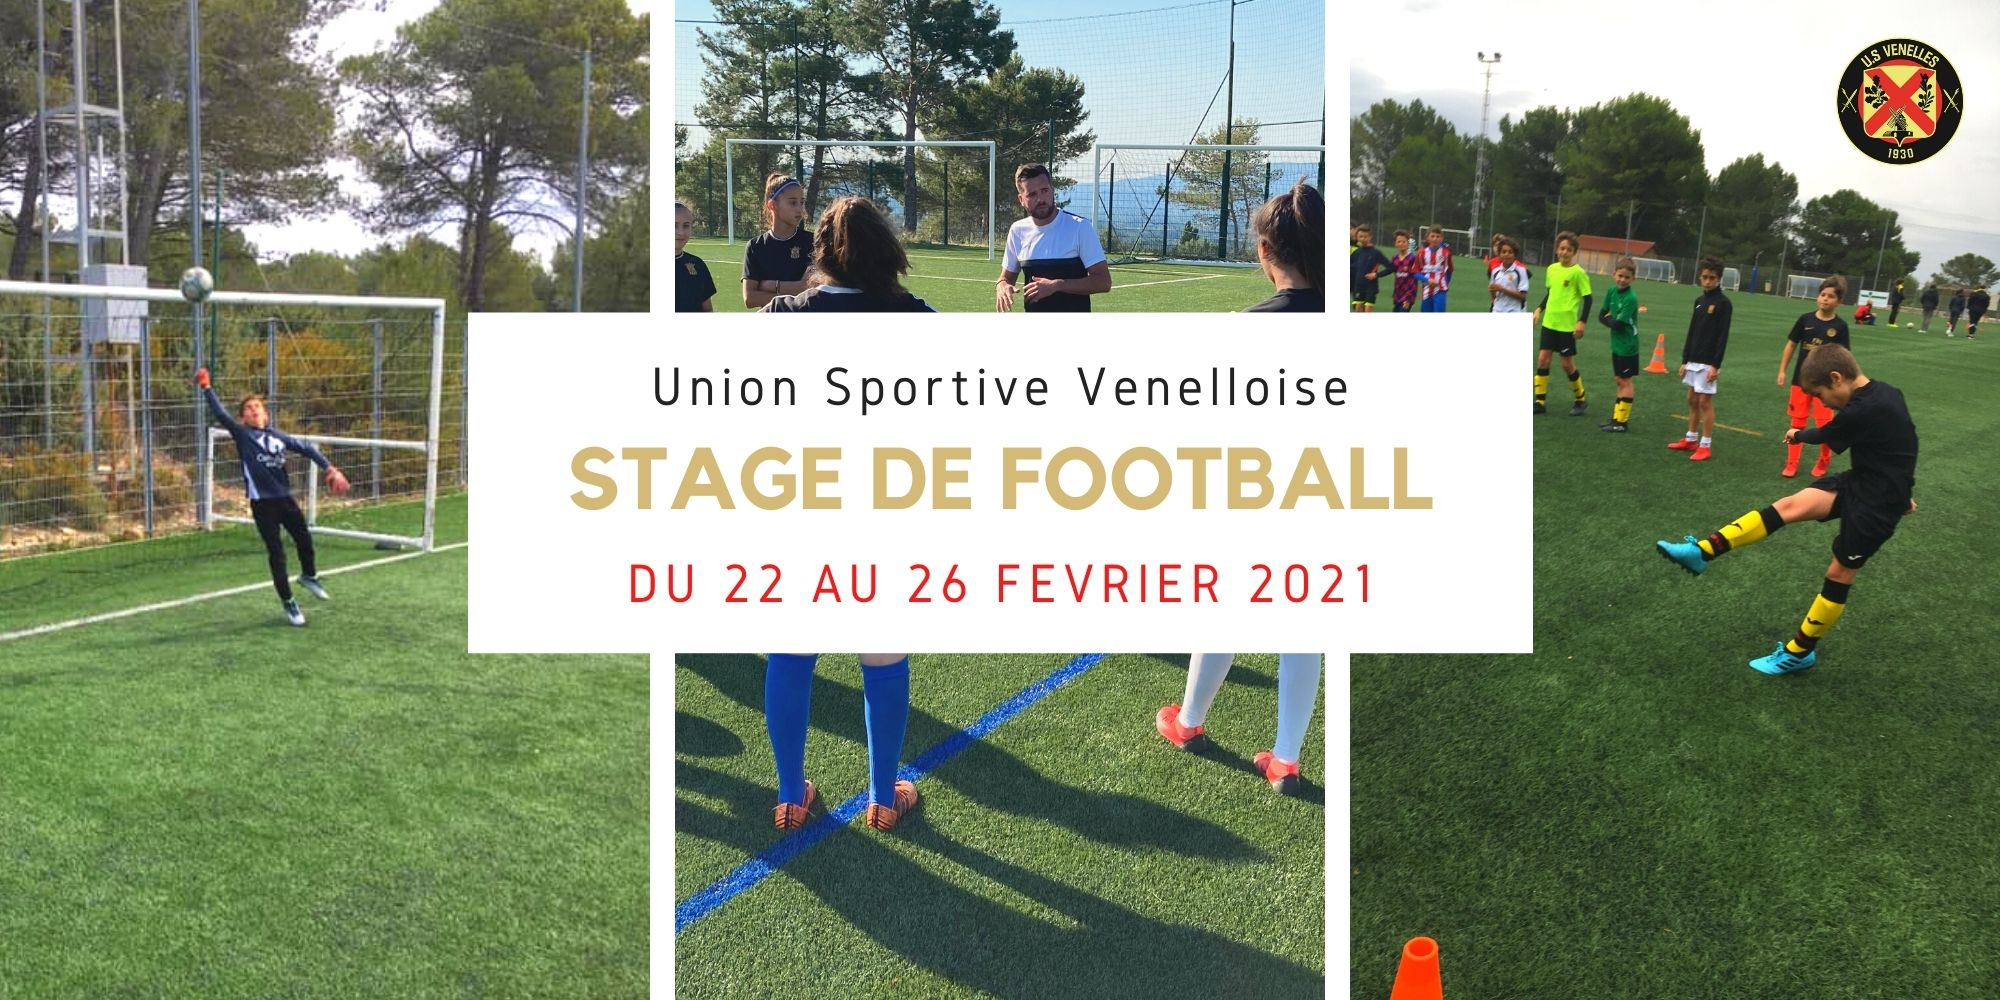 Stage de Février de Football 2021 - USV